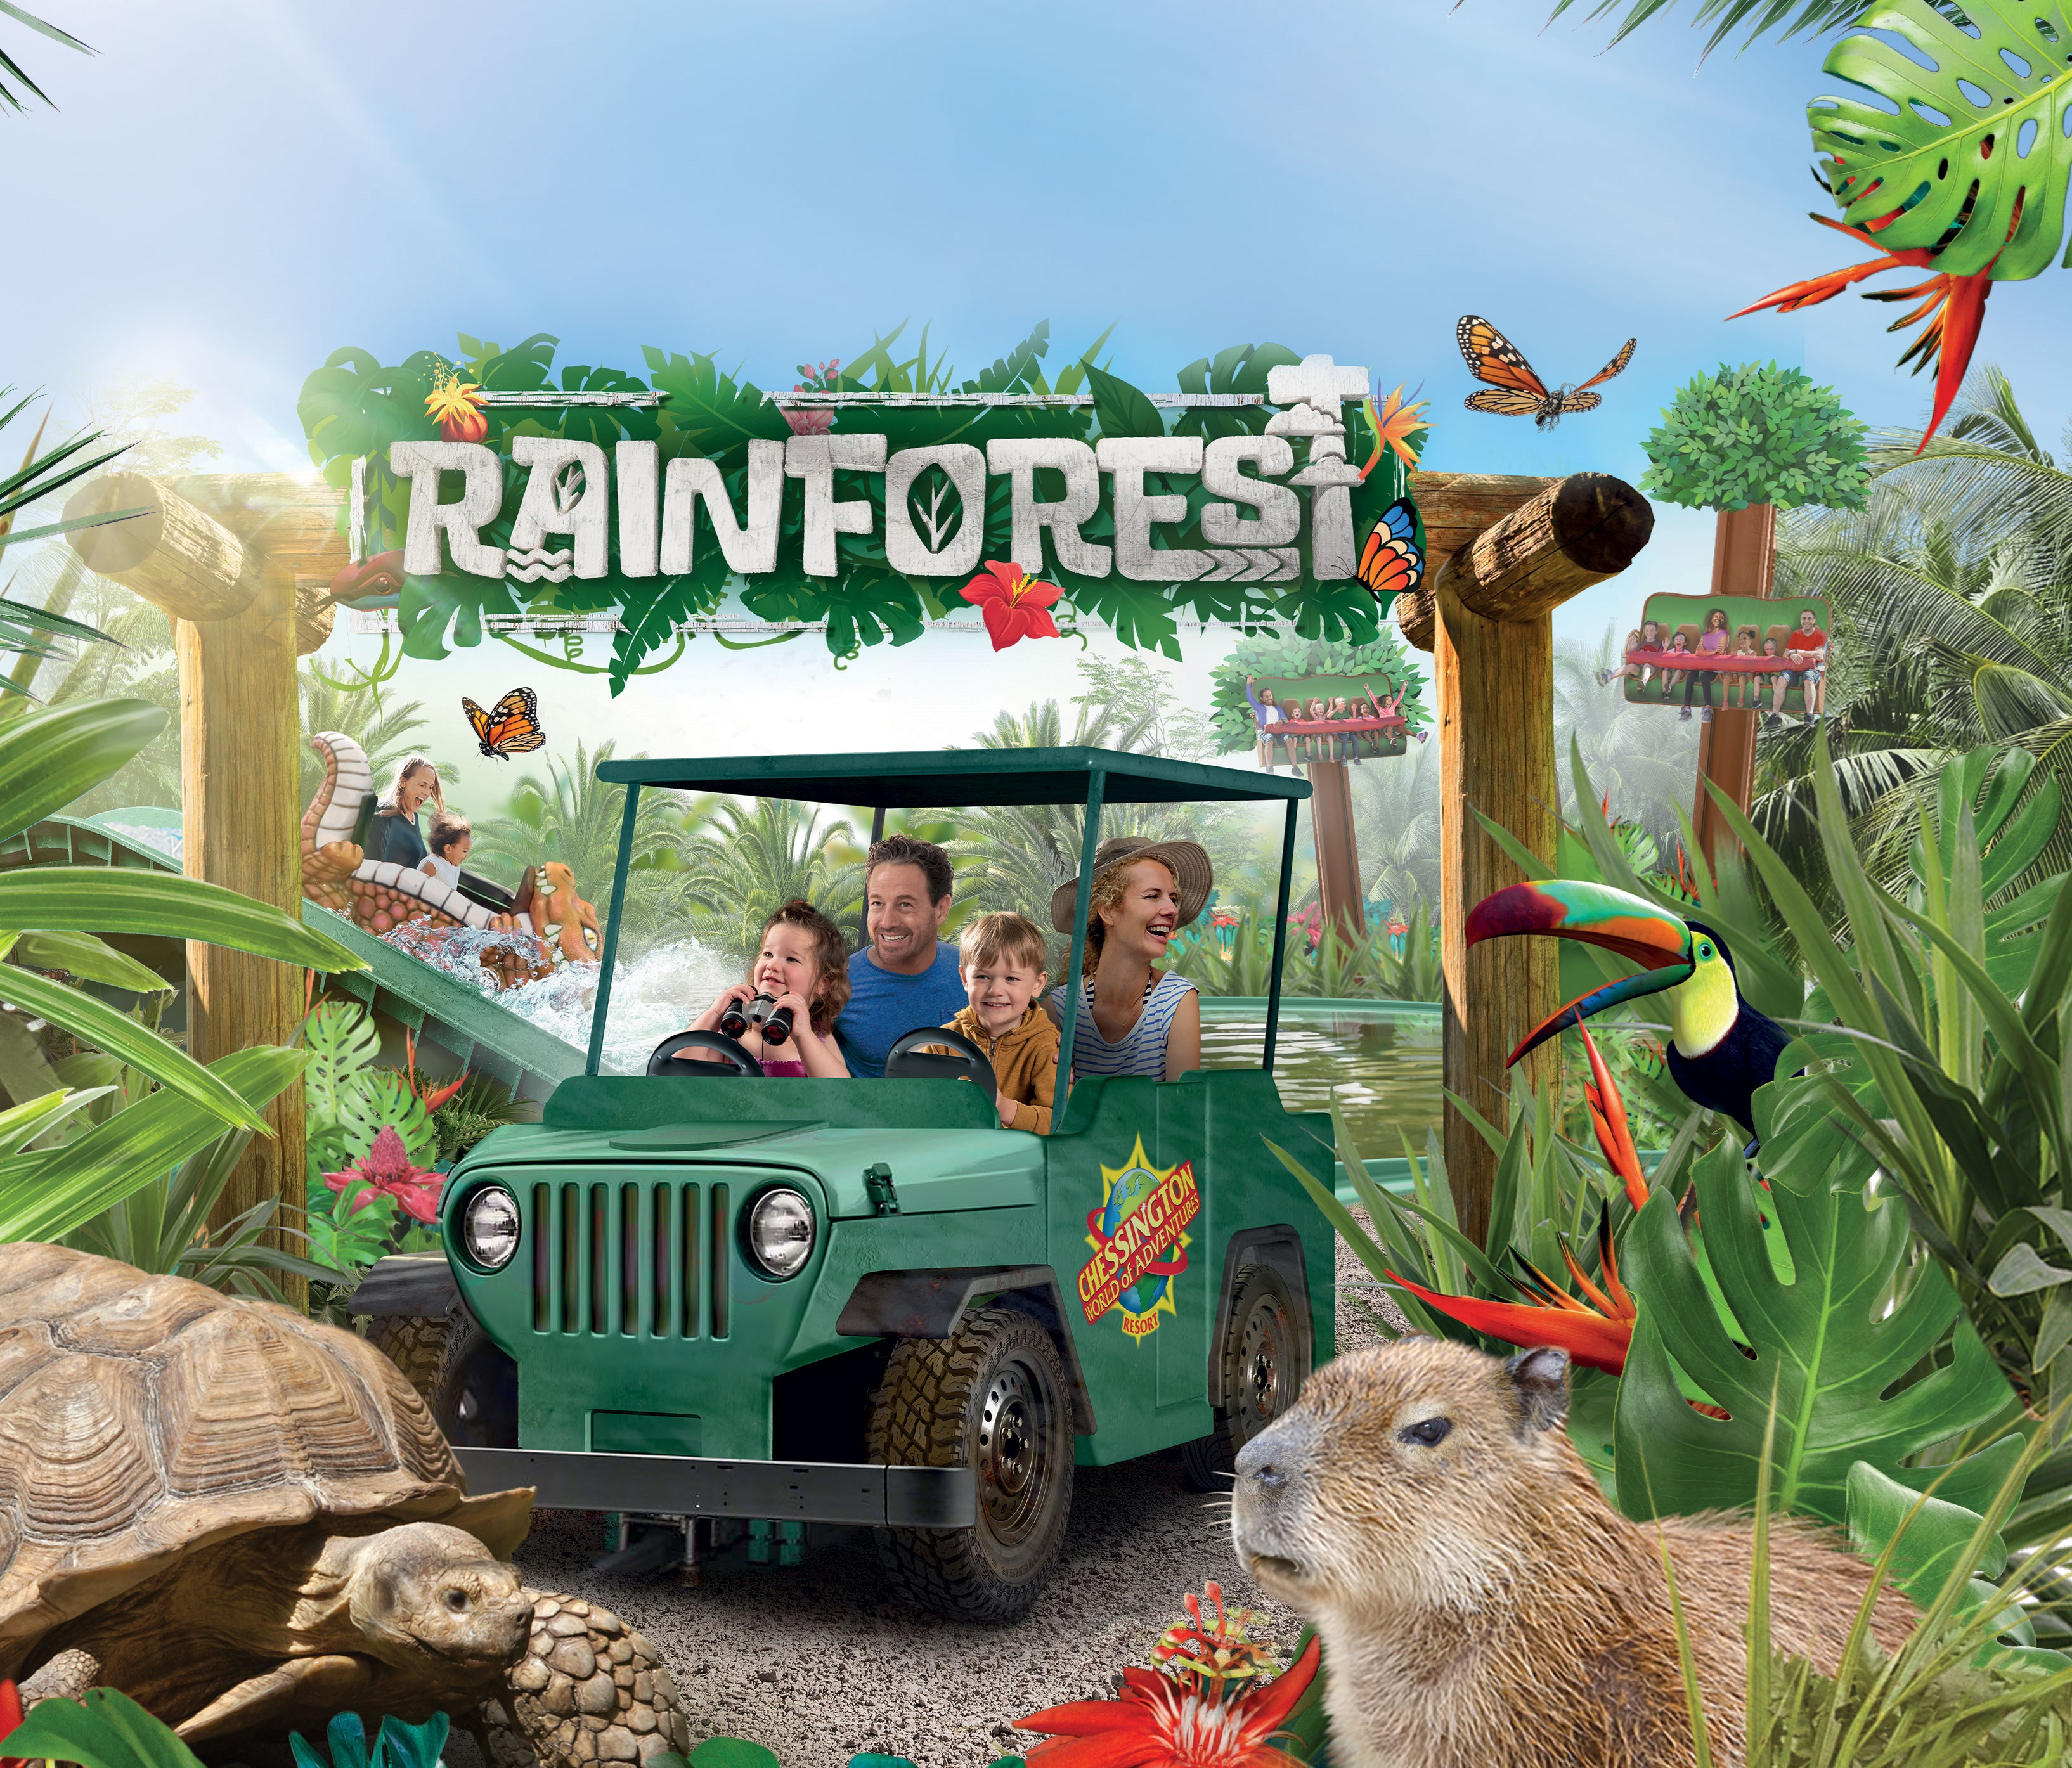 The Rainforest Websitev2 (1)